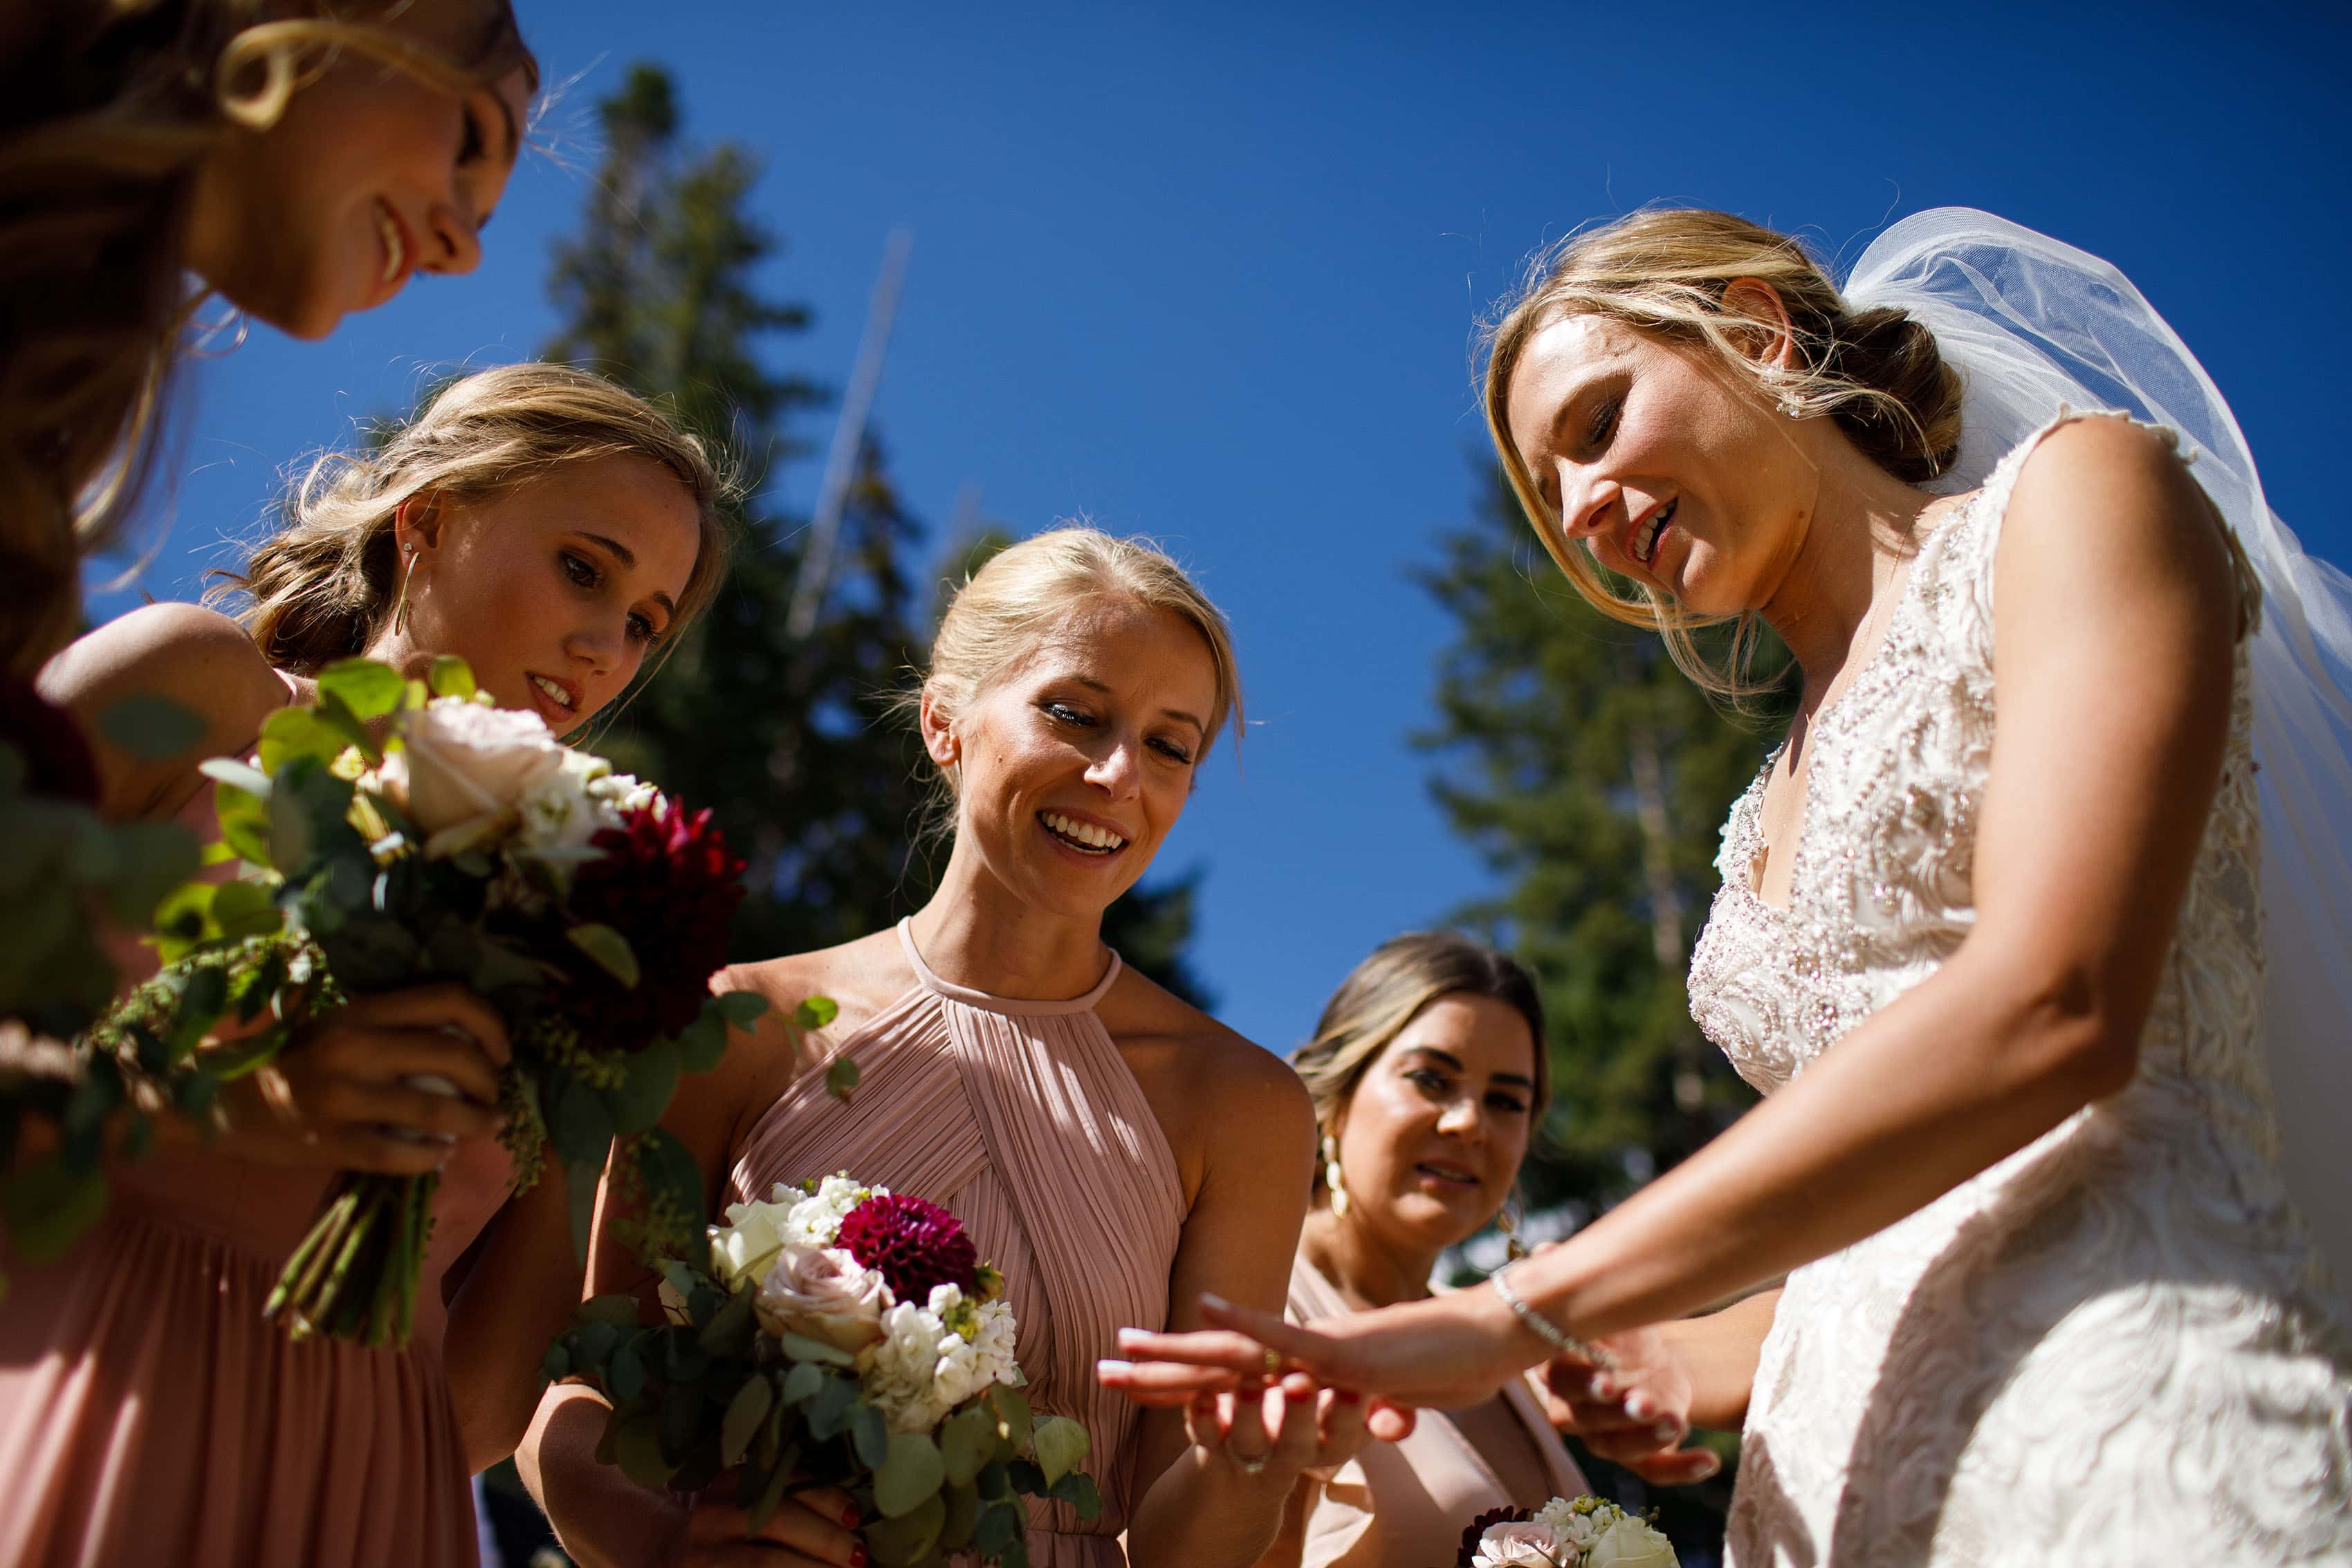 The bride shows off her new wedding ring to the bridesmaids